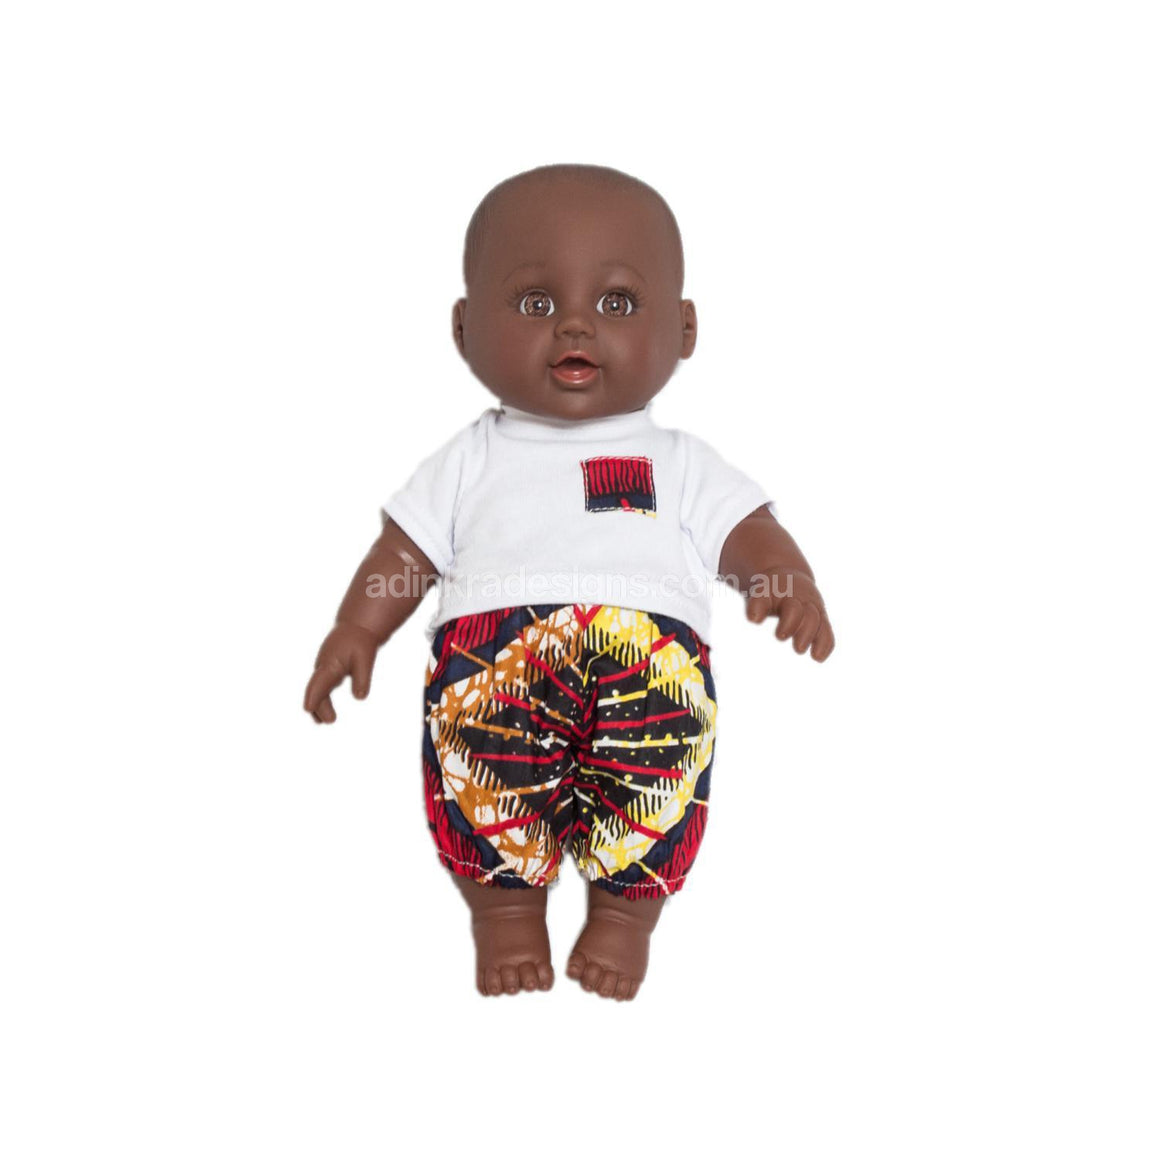 Fair trade African doll for charity Adinkra Project